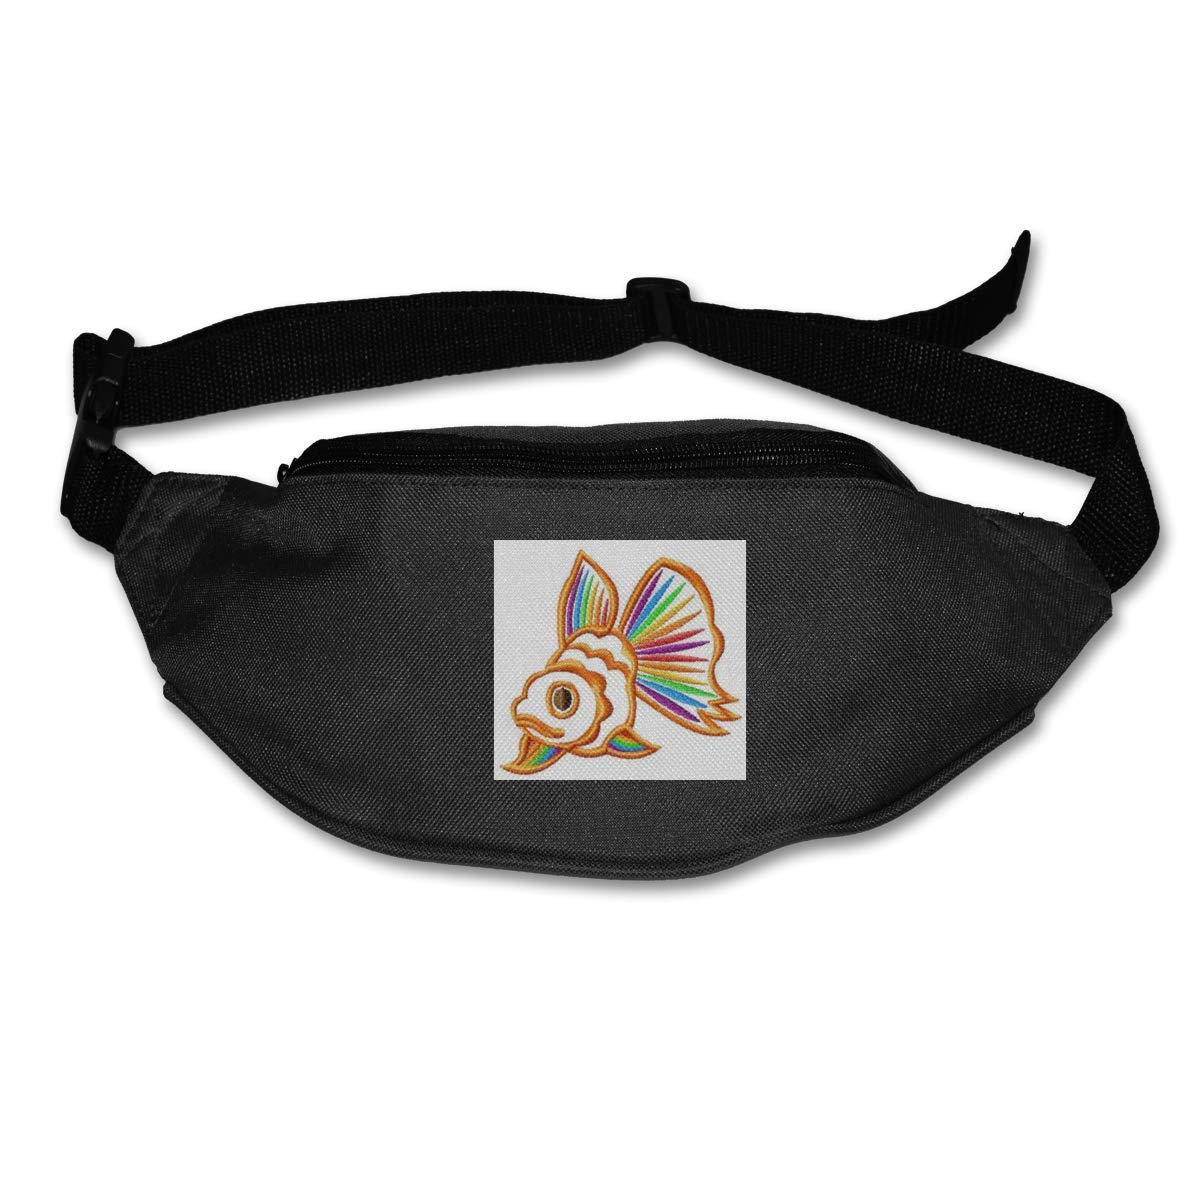 Rainbow Fish Sport Waist Pack Fanny Pack Adjustable For Travel